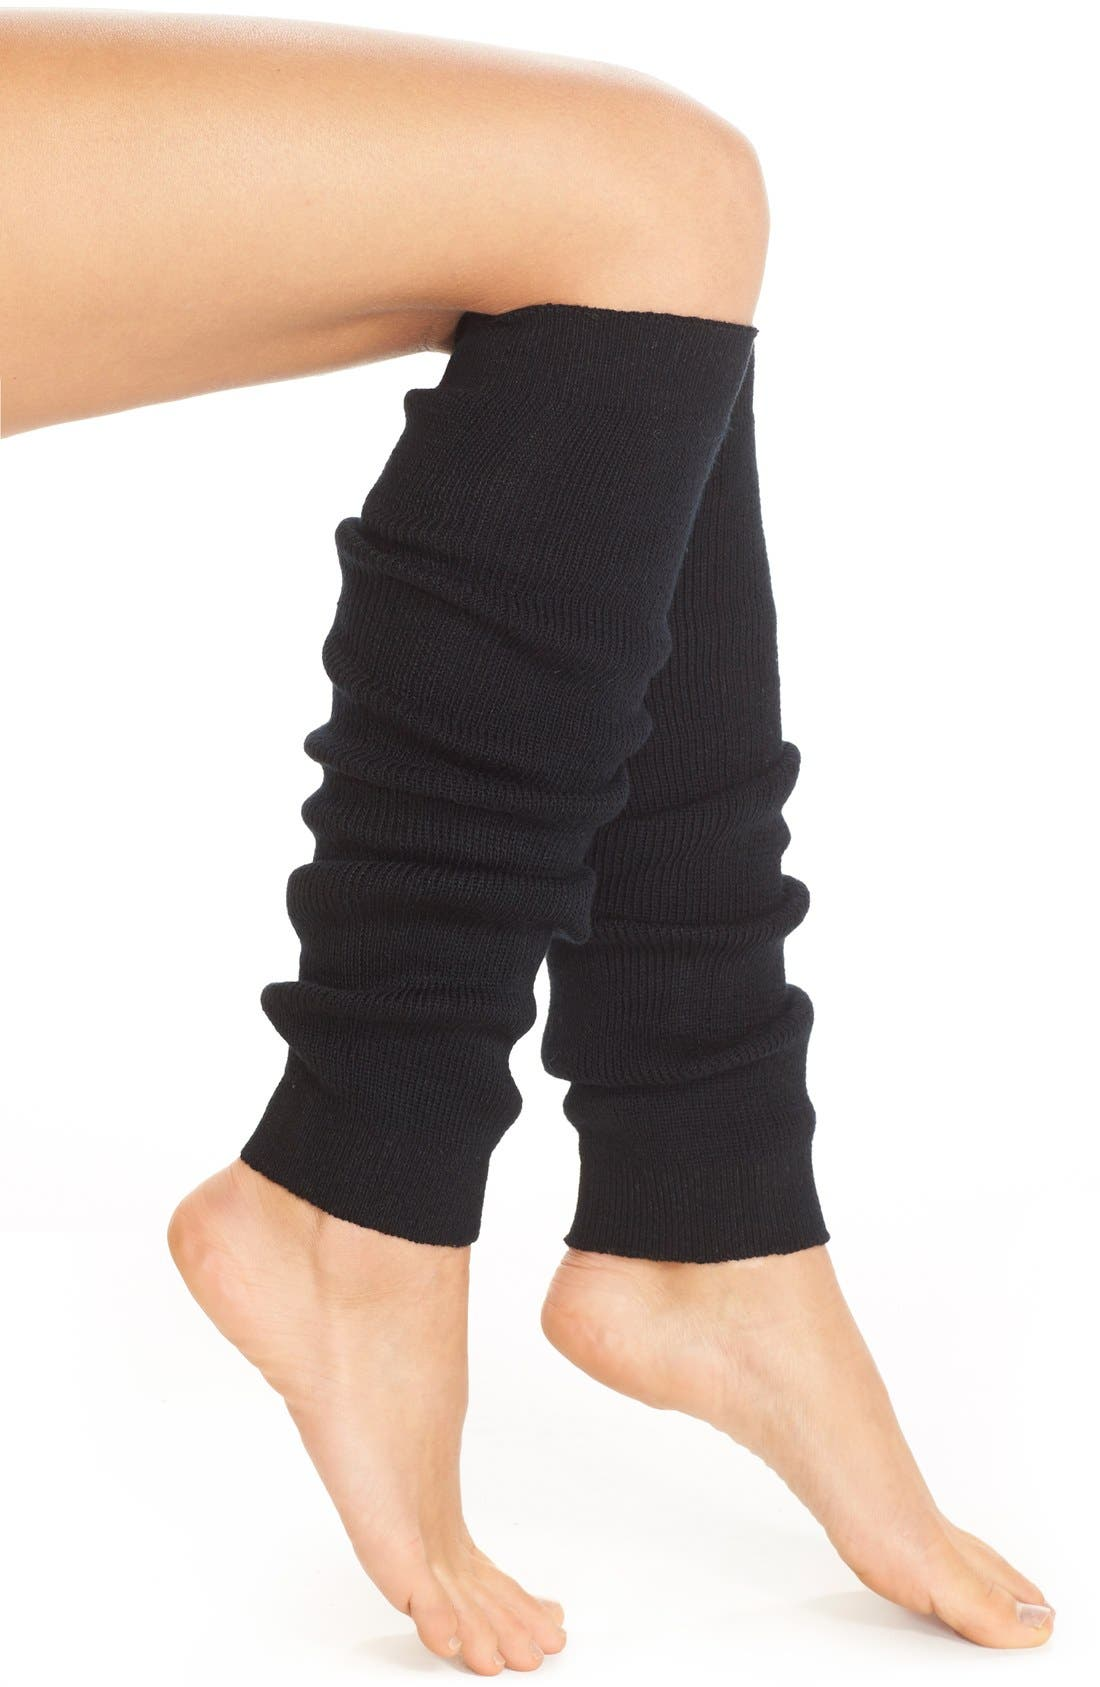 Main Image - Zella Knit Leg Warmers